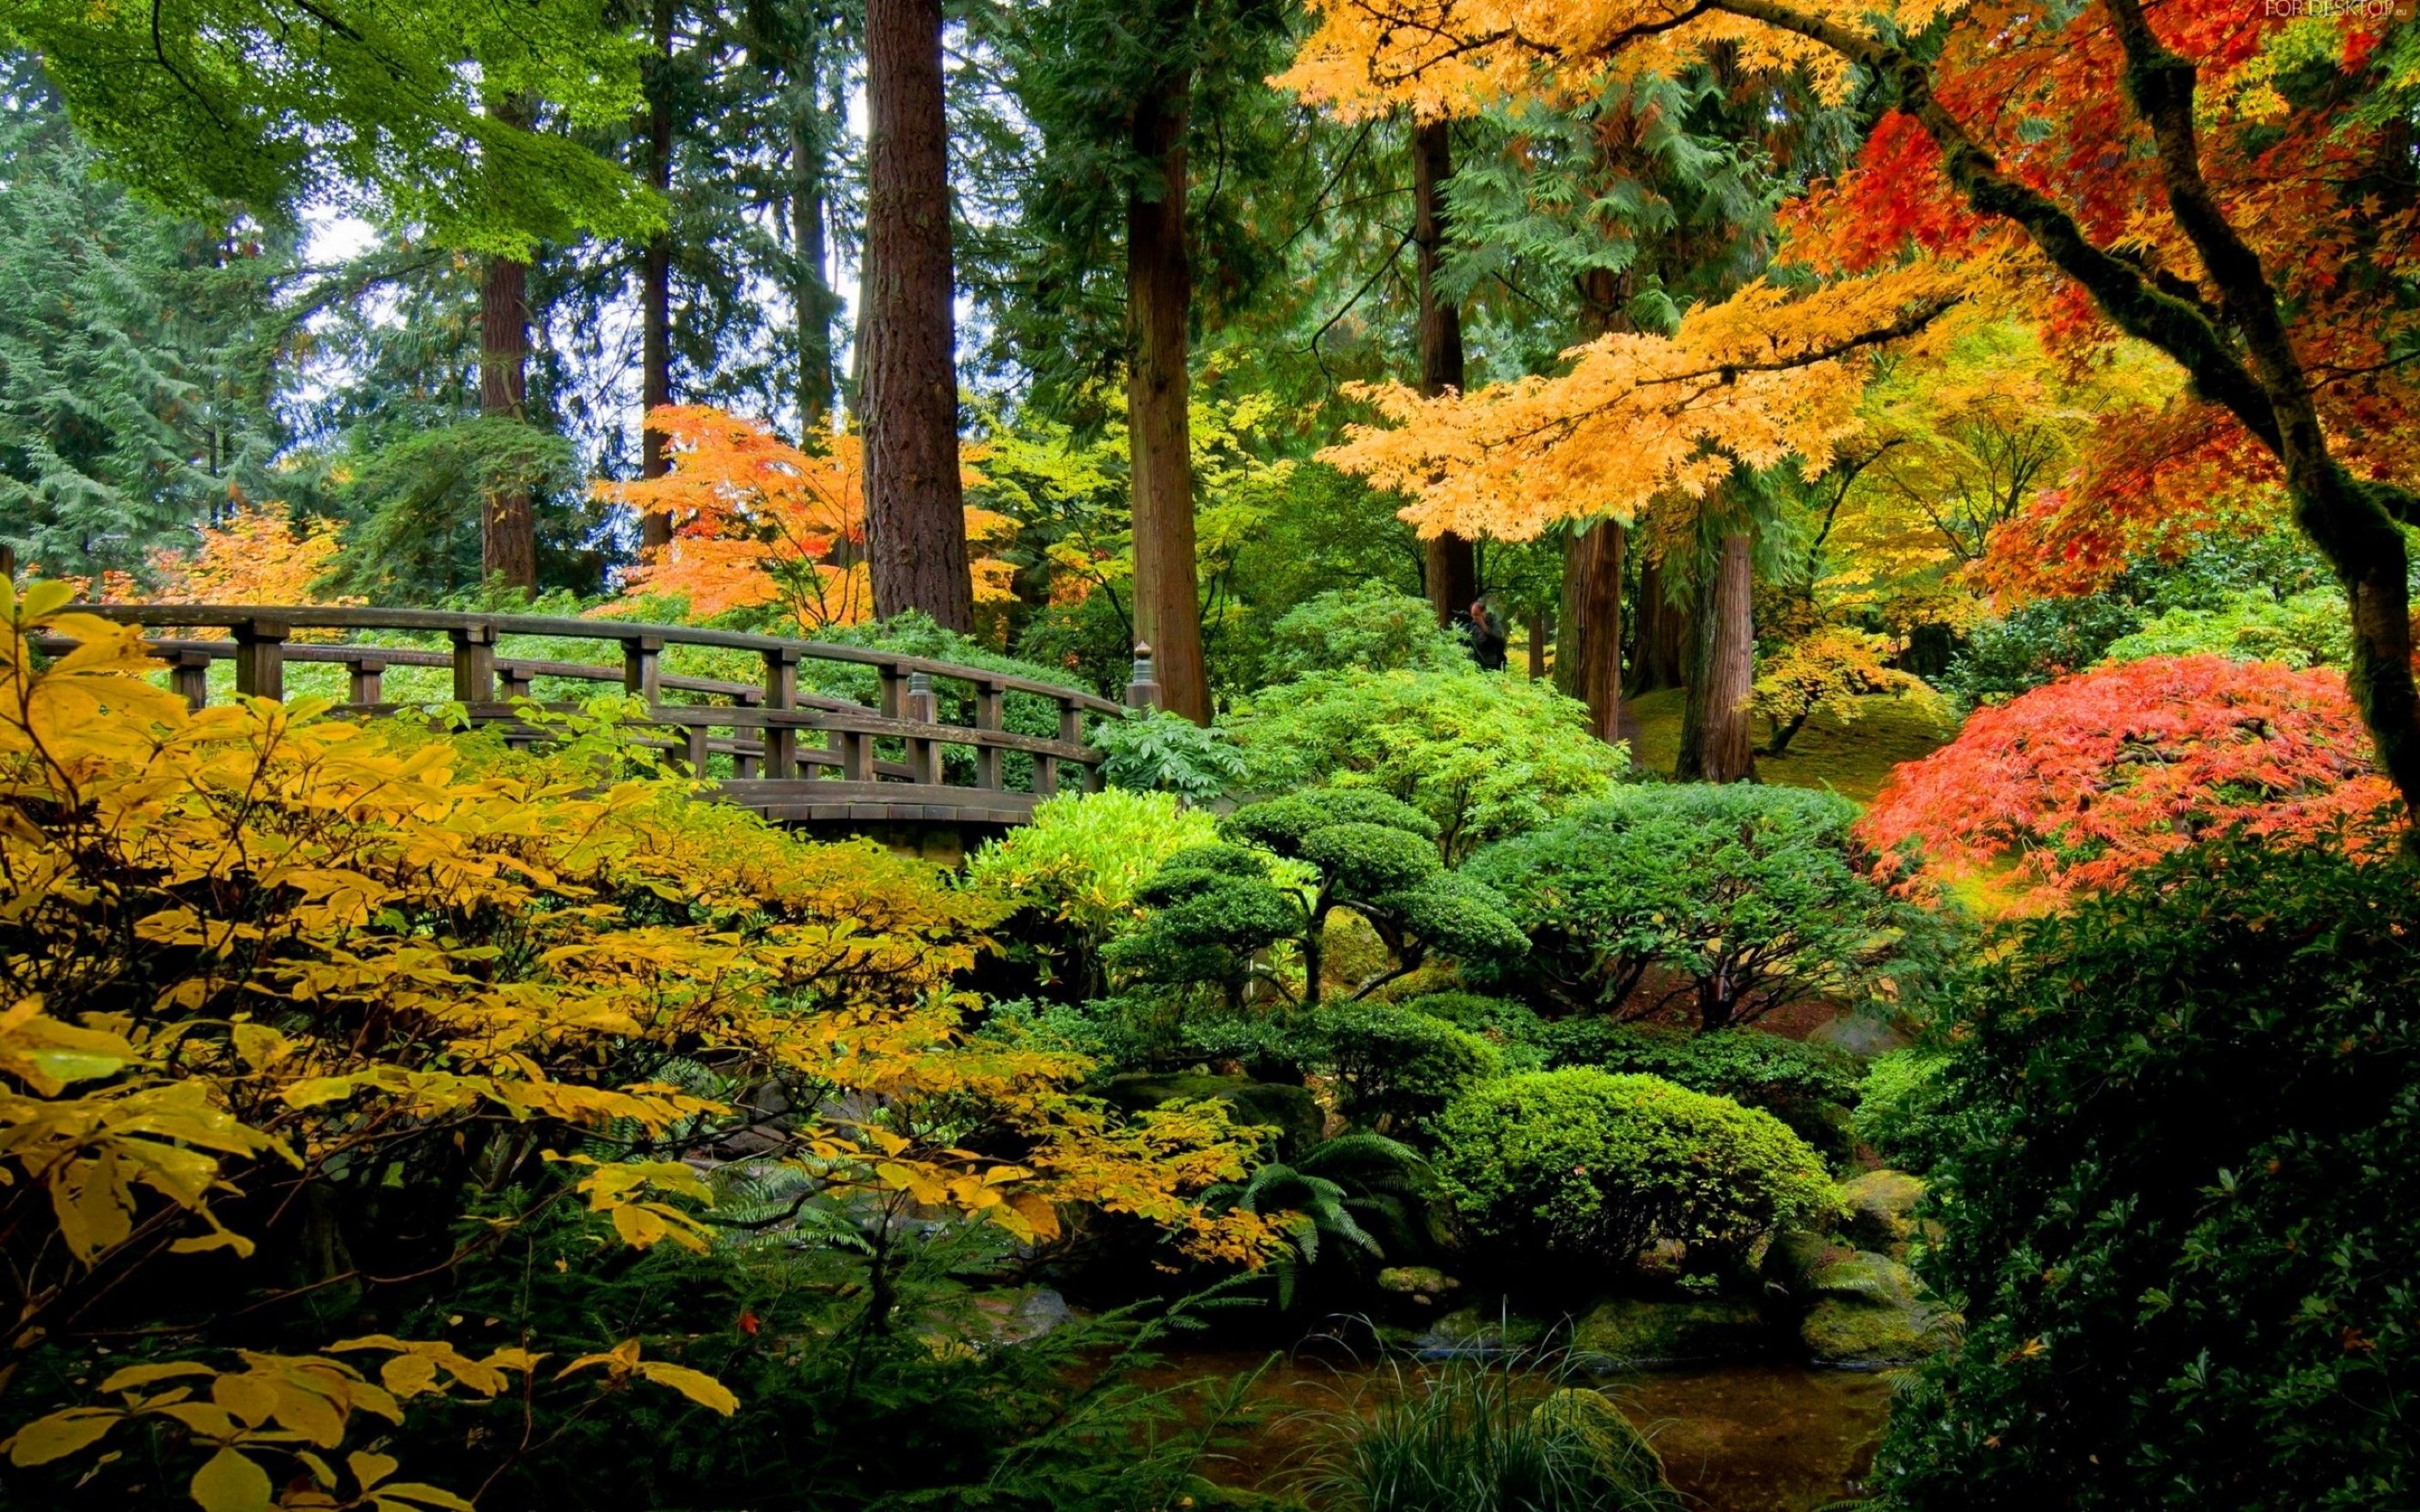 Download free HD Autumn Forest  Wallpaper, image